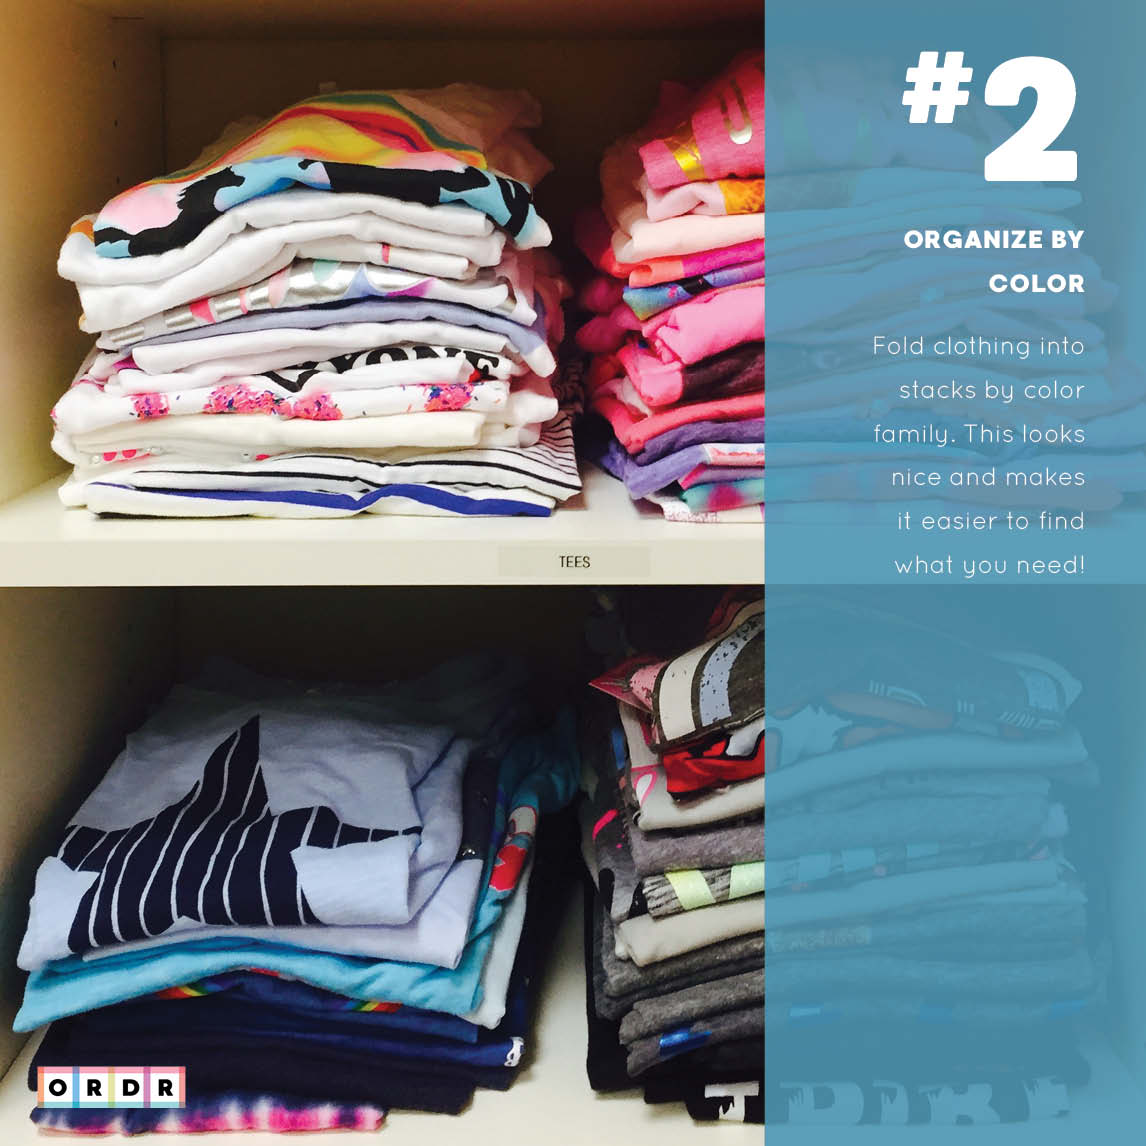 Shirts organized by color in a closet.